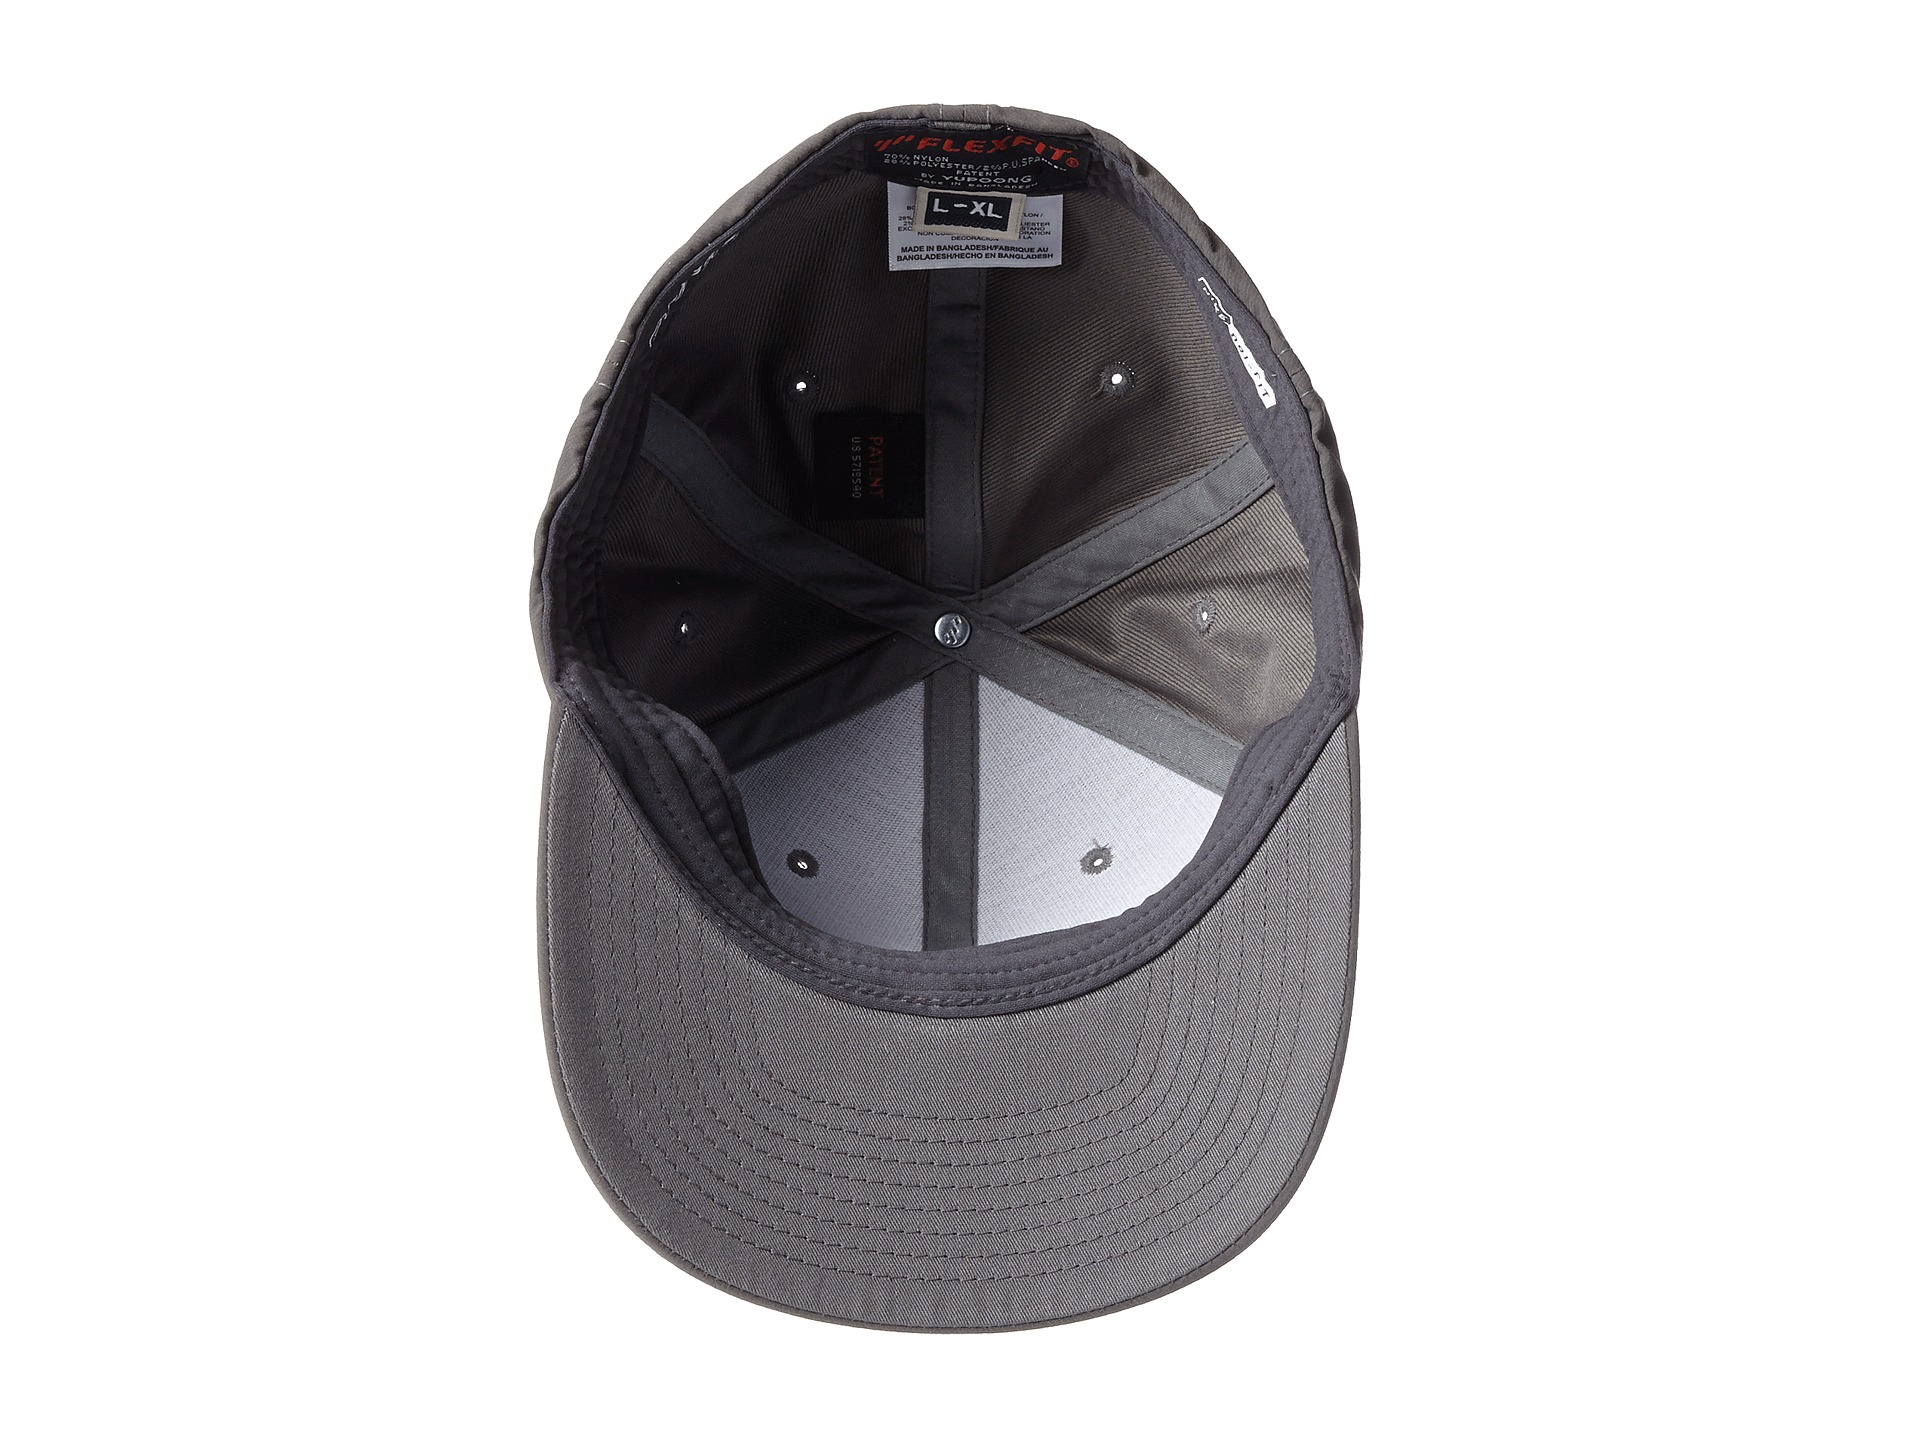 finest selection 2fba7 6eaf3 ... uk lyst hurley dry out flexfit permacurve hat in gray for men 4c637  3c89a